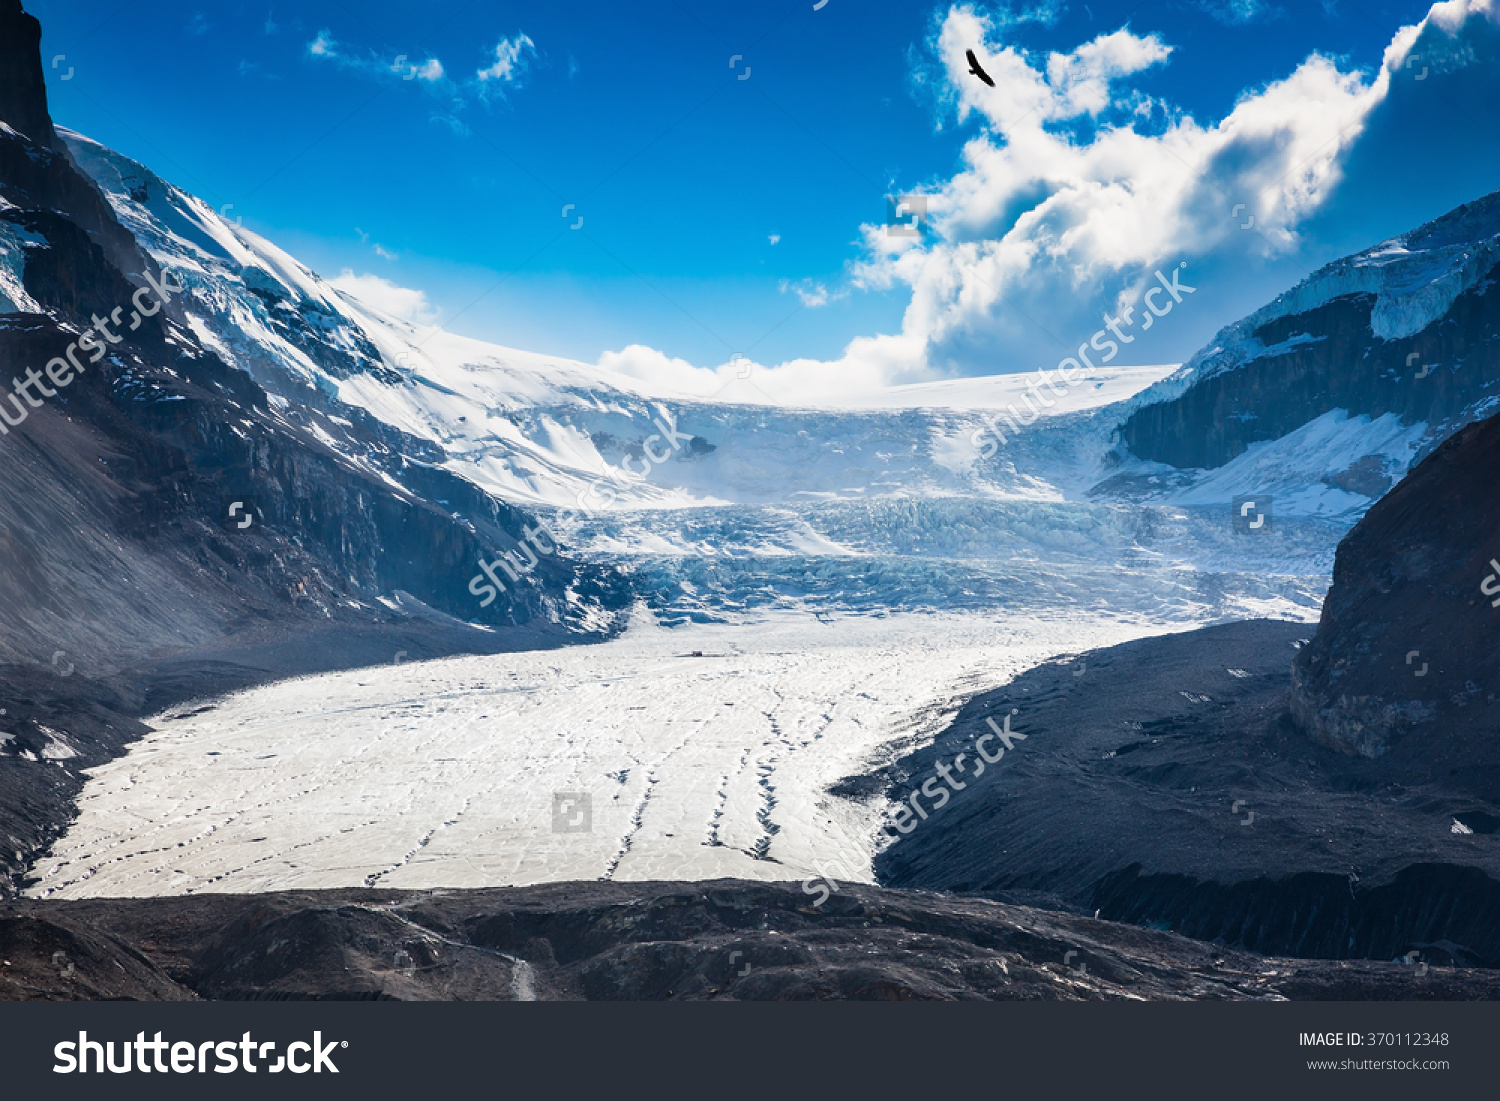 Melting Columbia Icefield In Banff National Park, Canada. The.